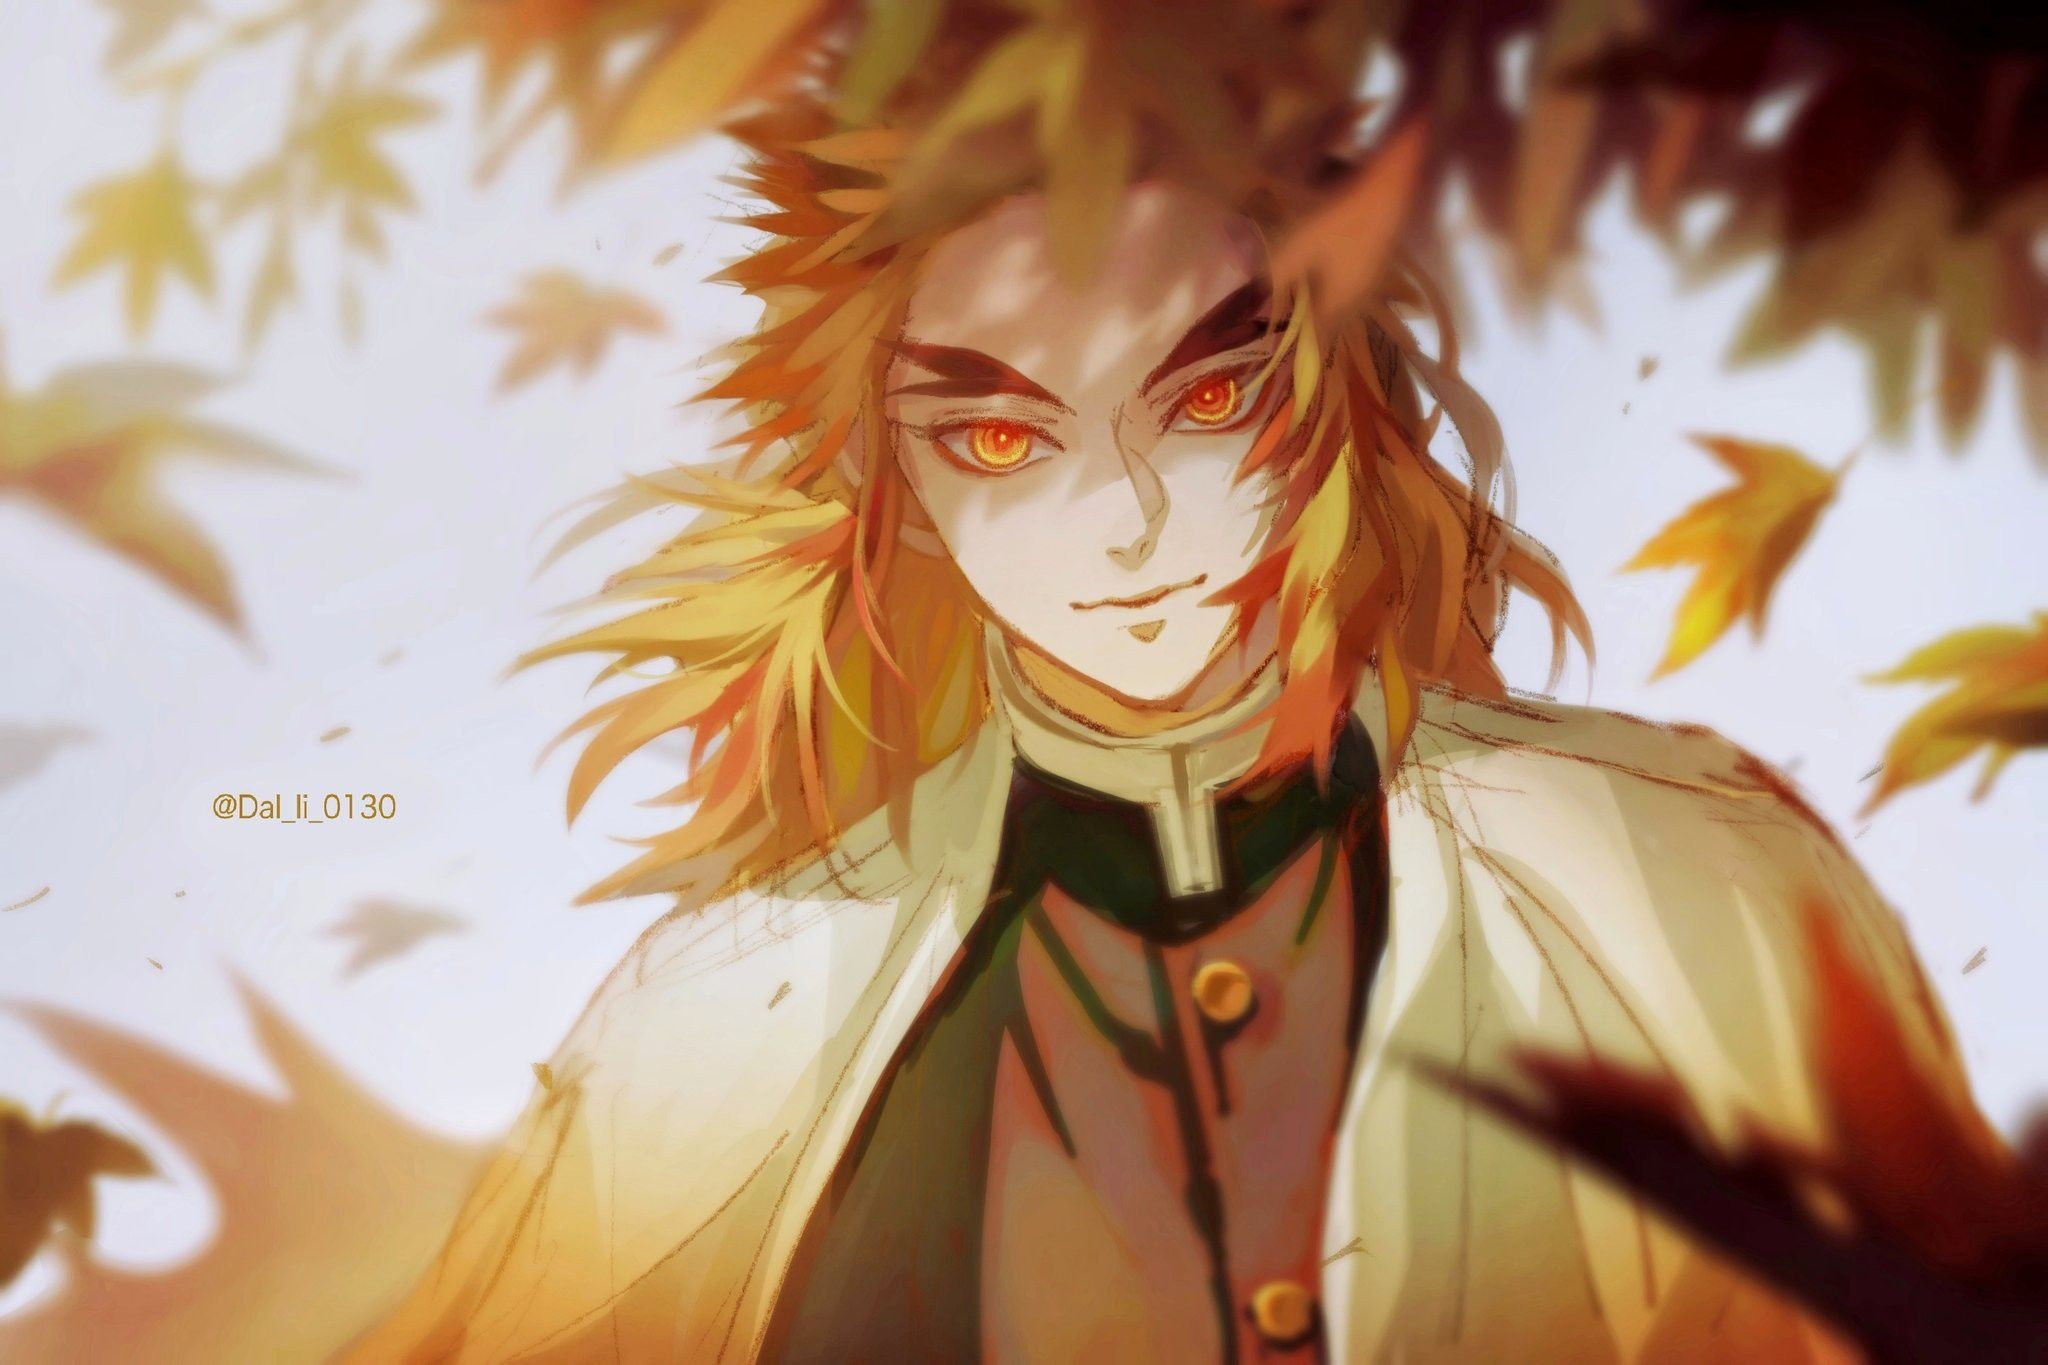 Evil presence slayer is windows 10 wallpaper 4k for the anime wallpaper iphone assortment and is accessible for desktop pc and mobile screen. Demon Slayer Rengoku Pinterest - Manga